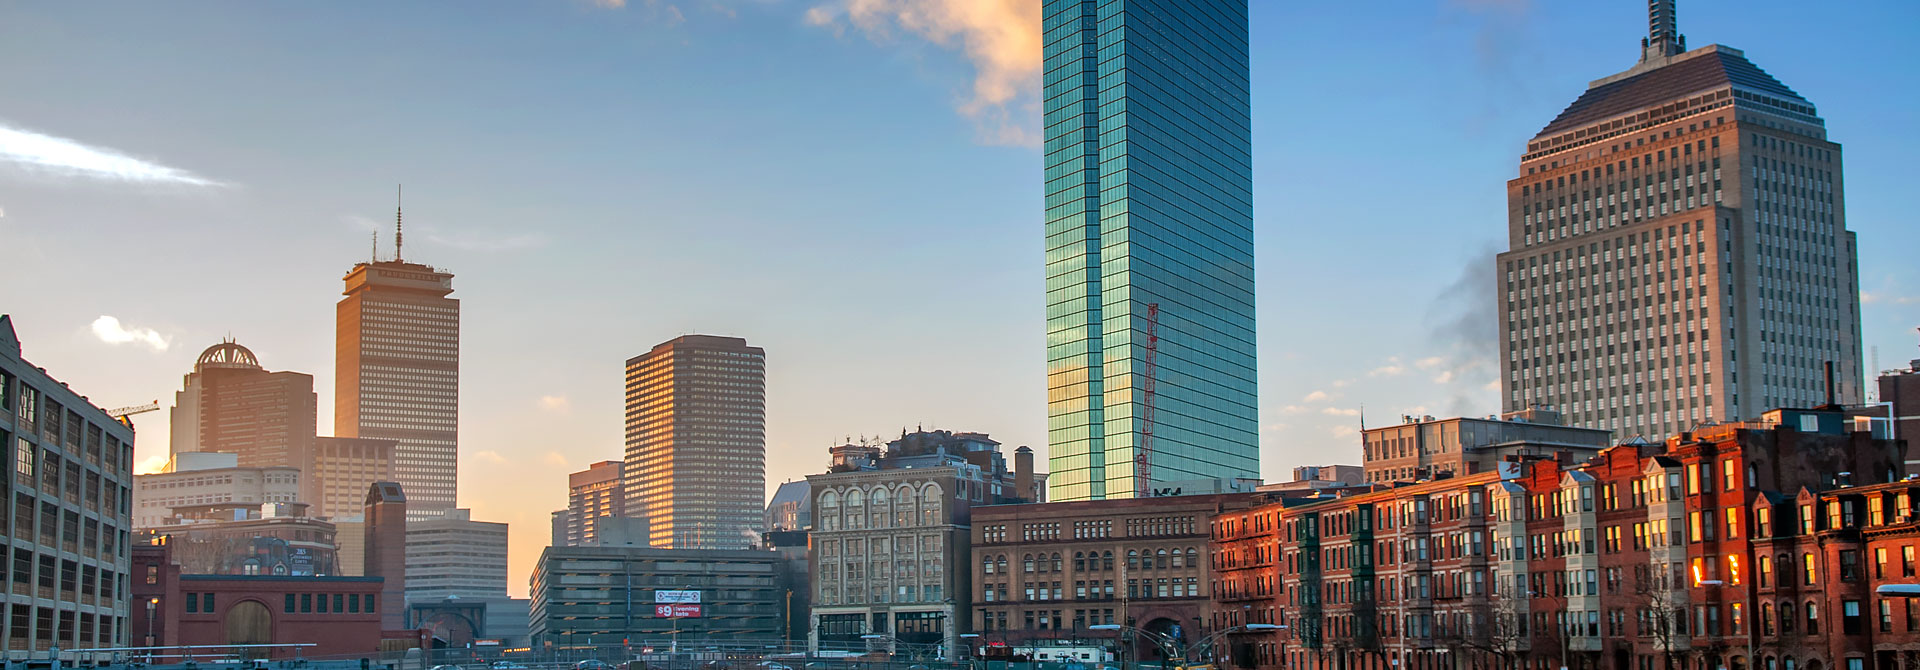 Resesildring Boston och New York